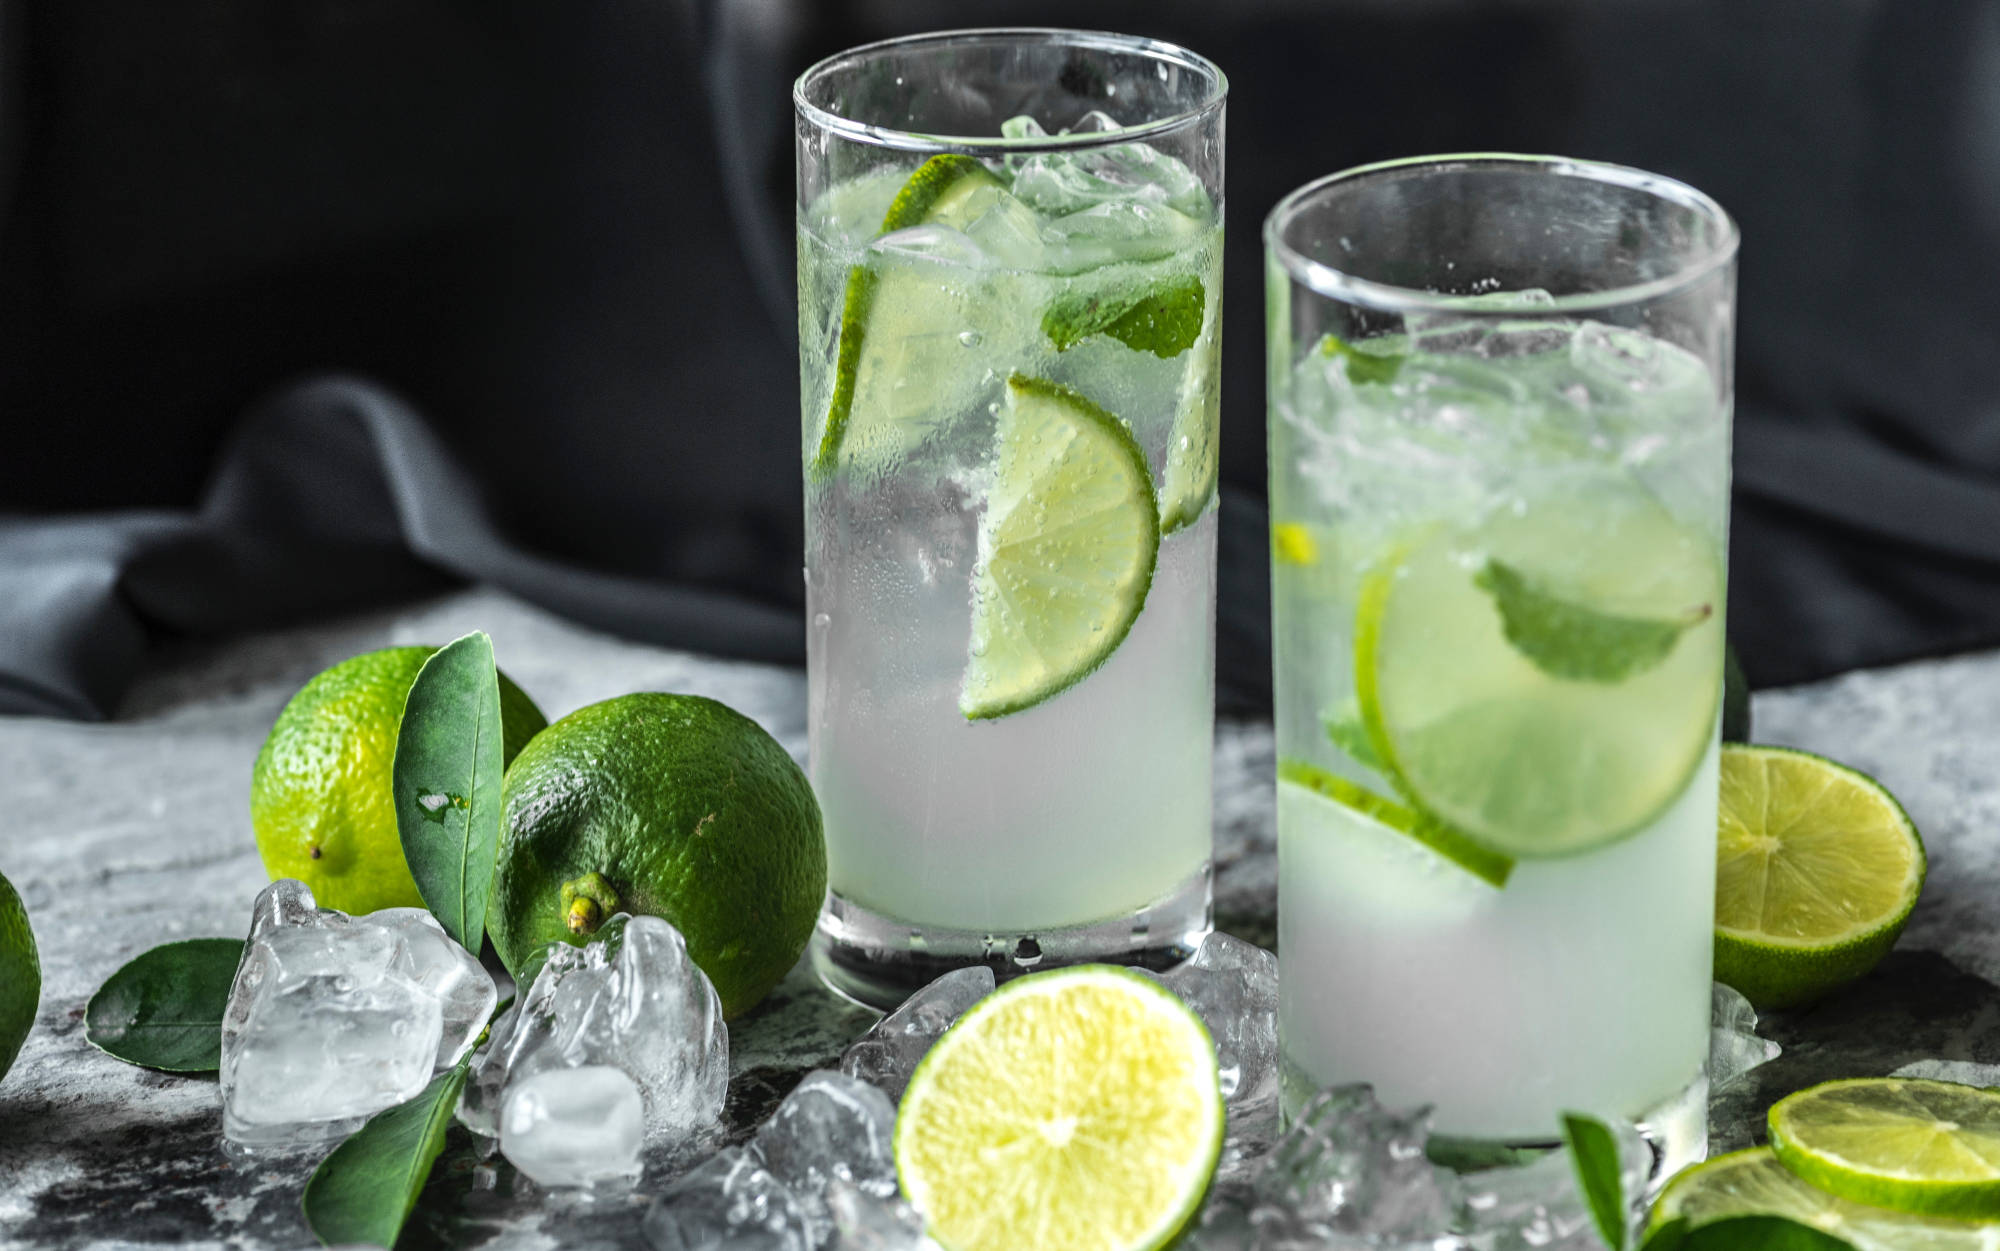 THE REAL CUBAN MOJITO THAT YOU HAVE NEVER TASTED